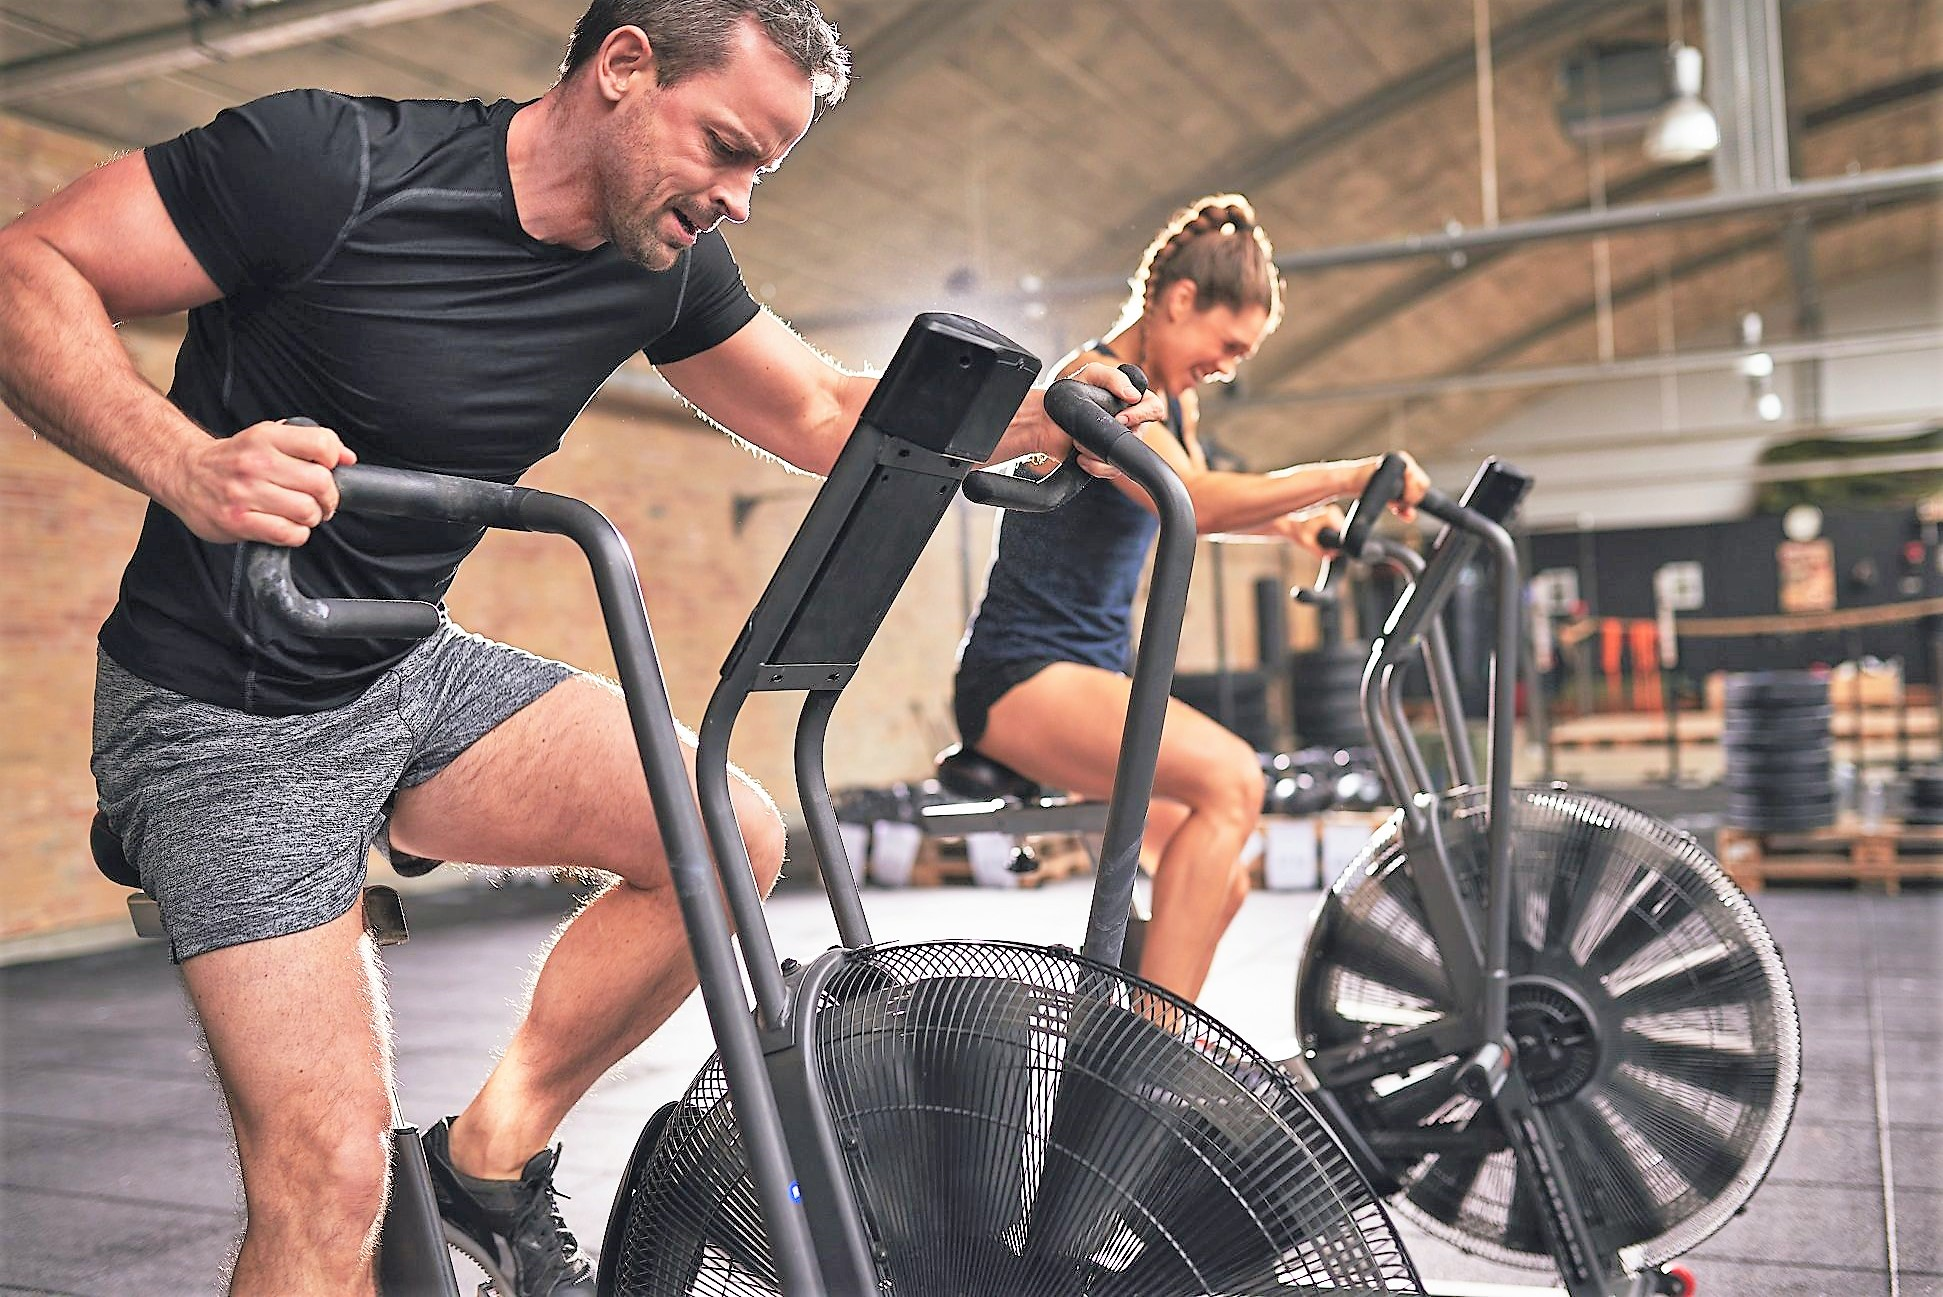 How to Get Fit Without Getting Injured